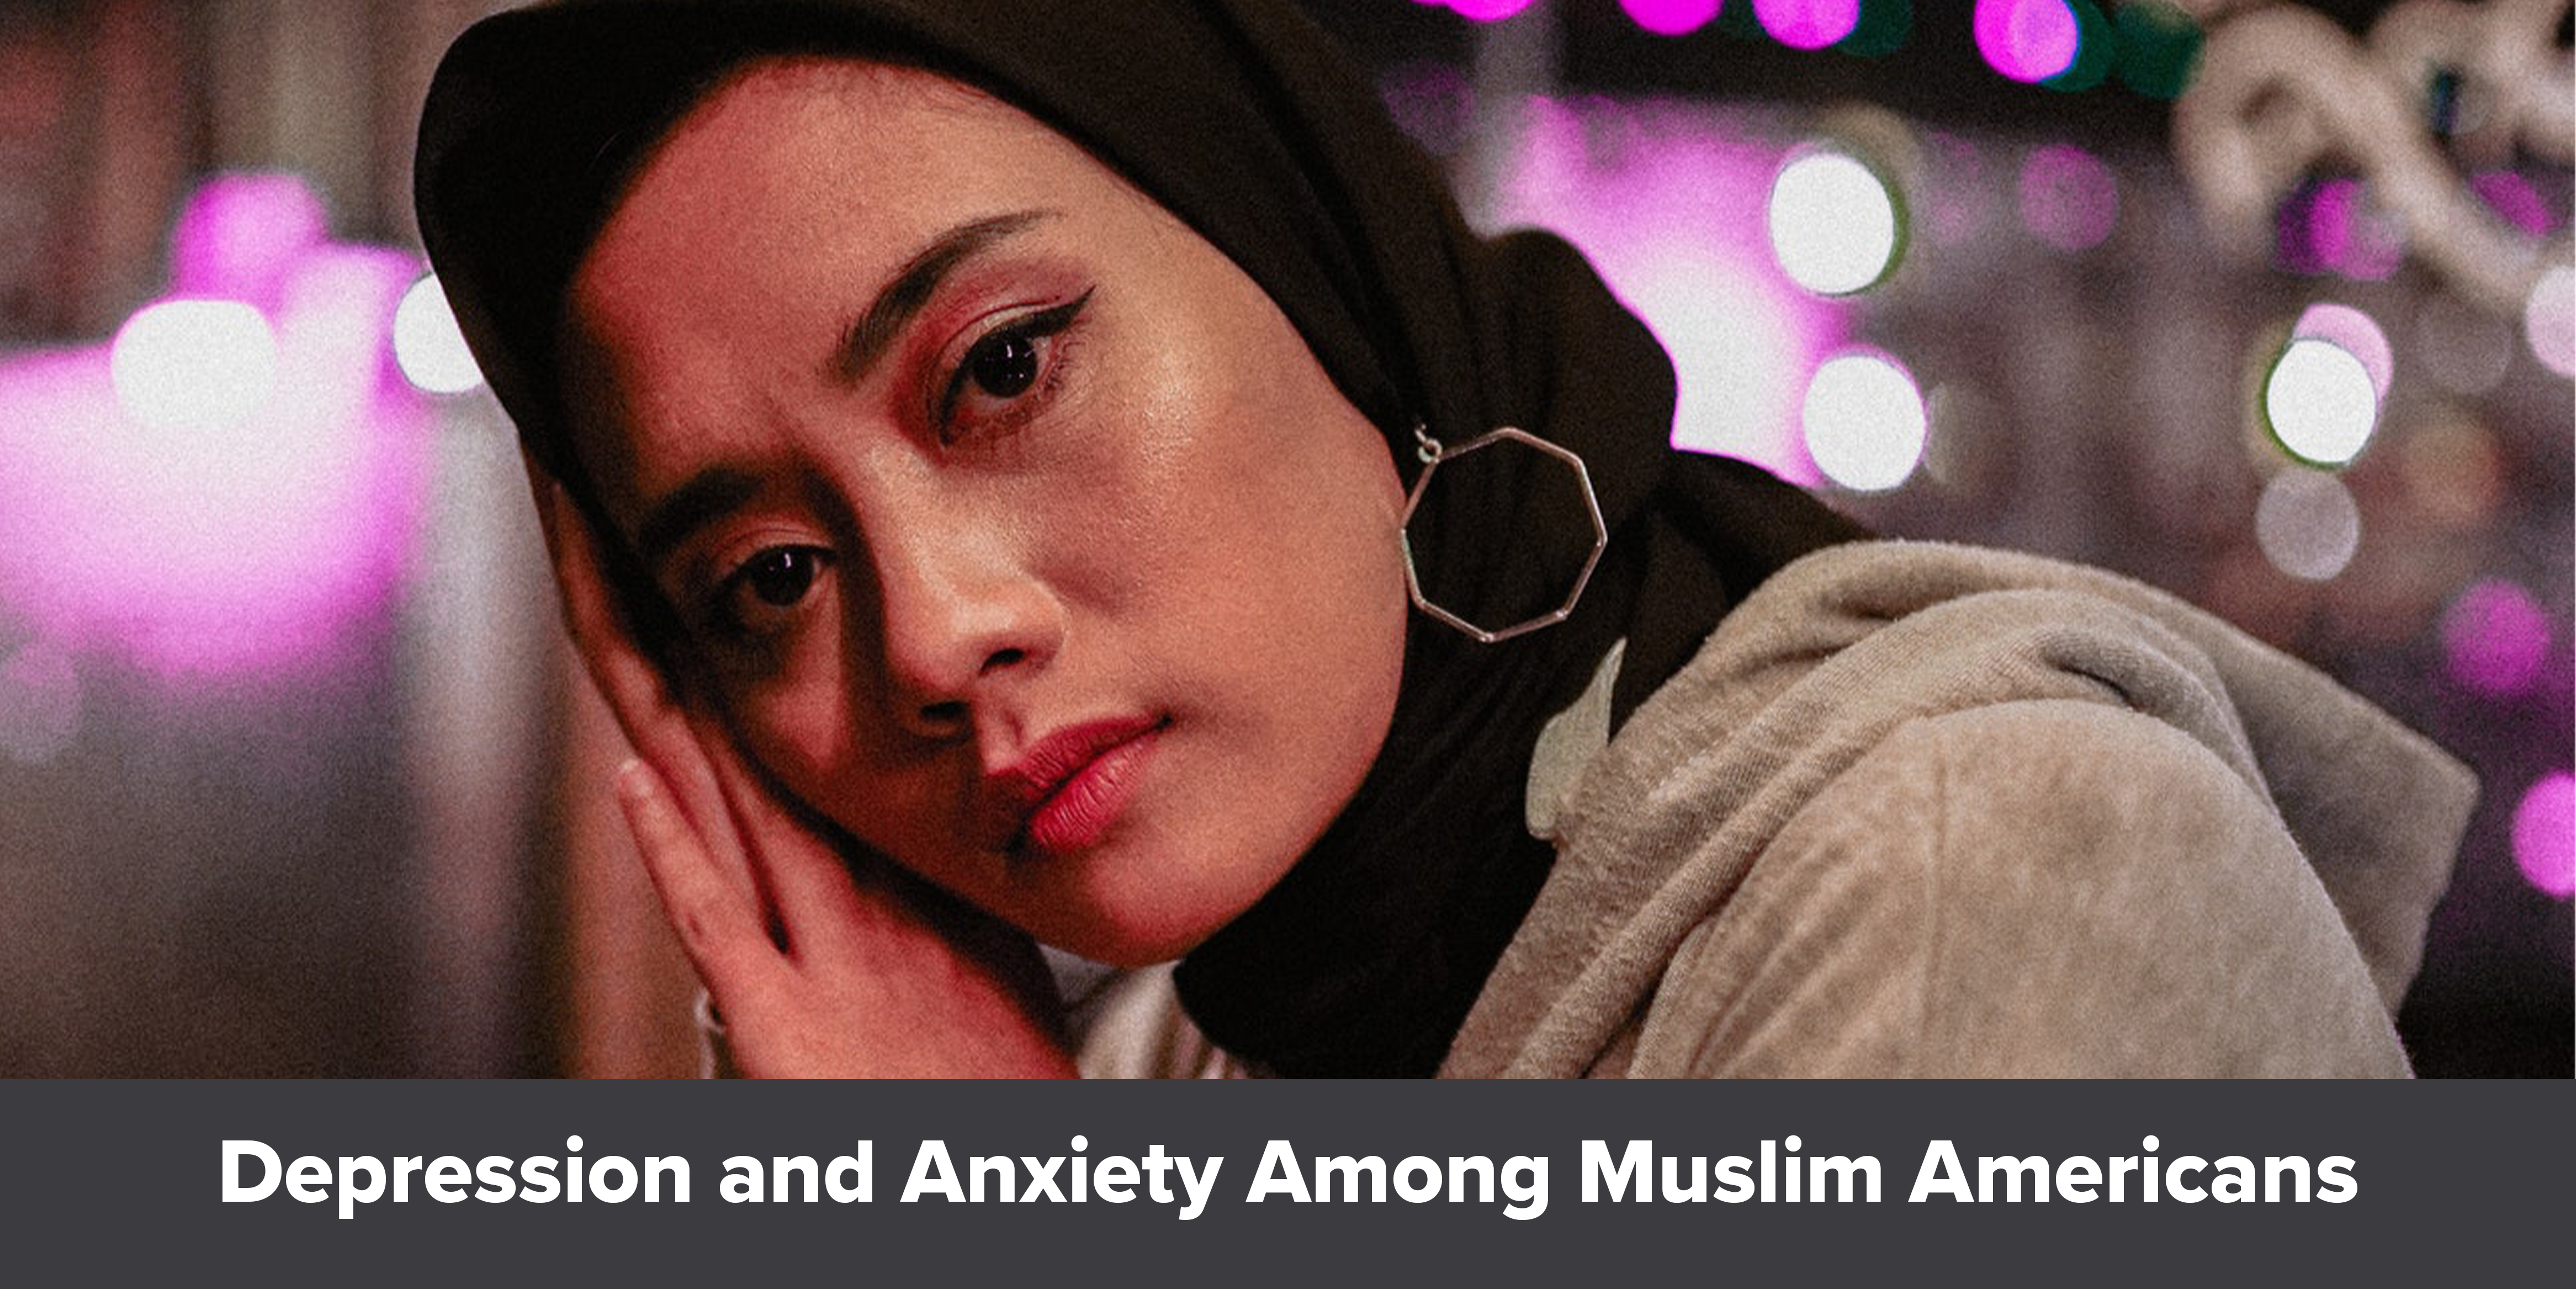 Depression and Anxiety Among Muslim Americans